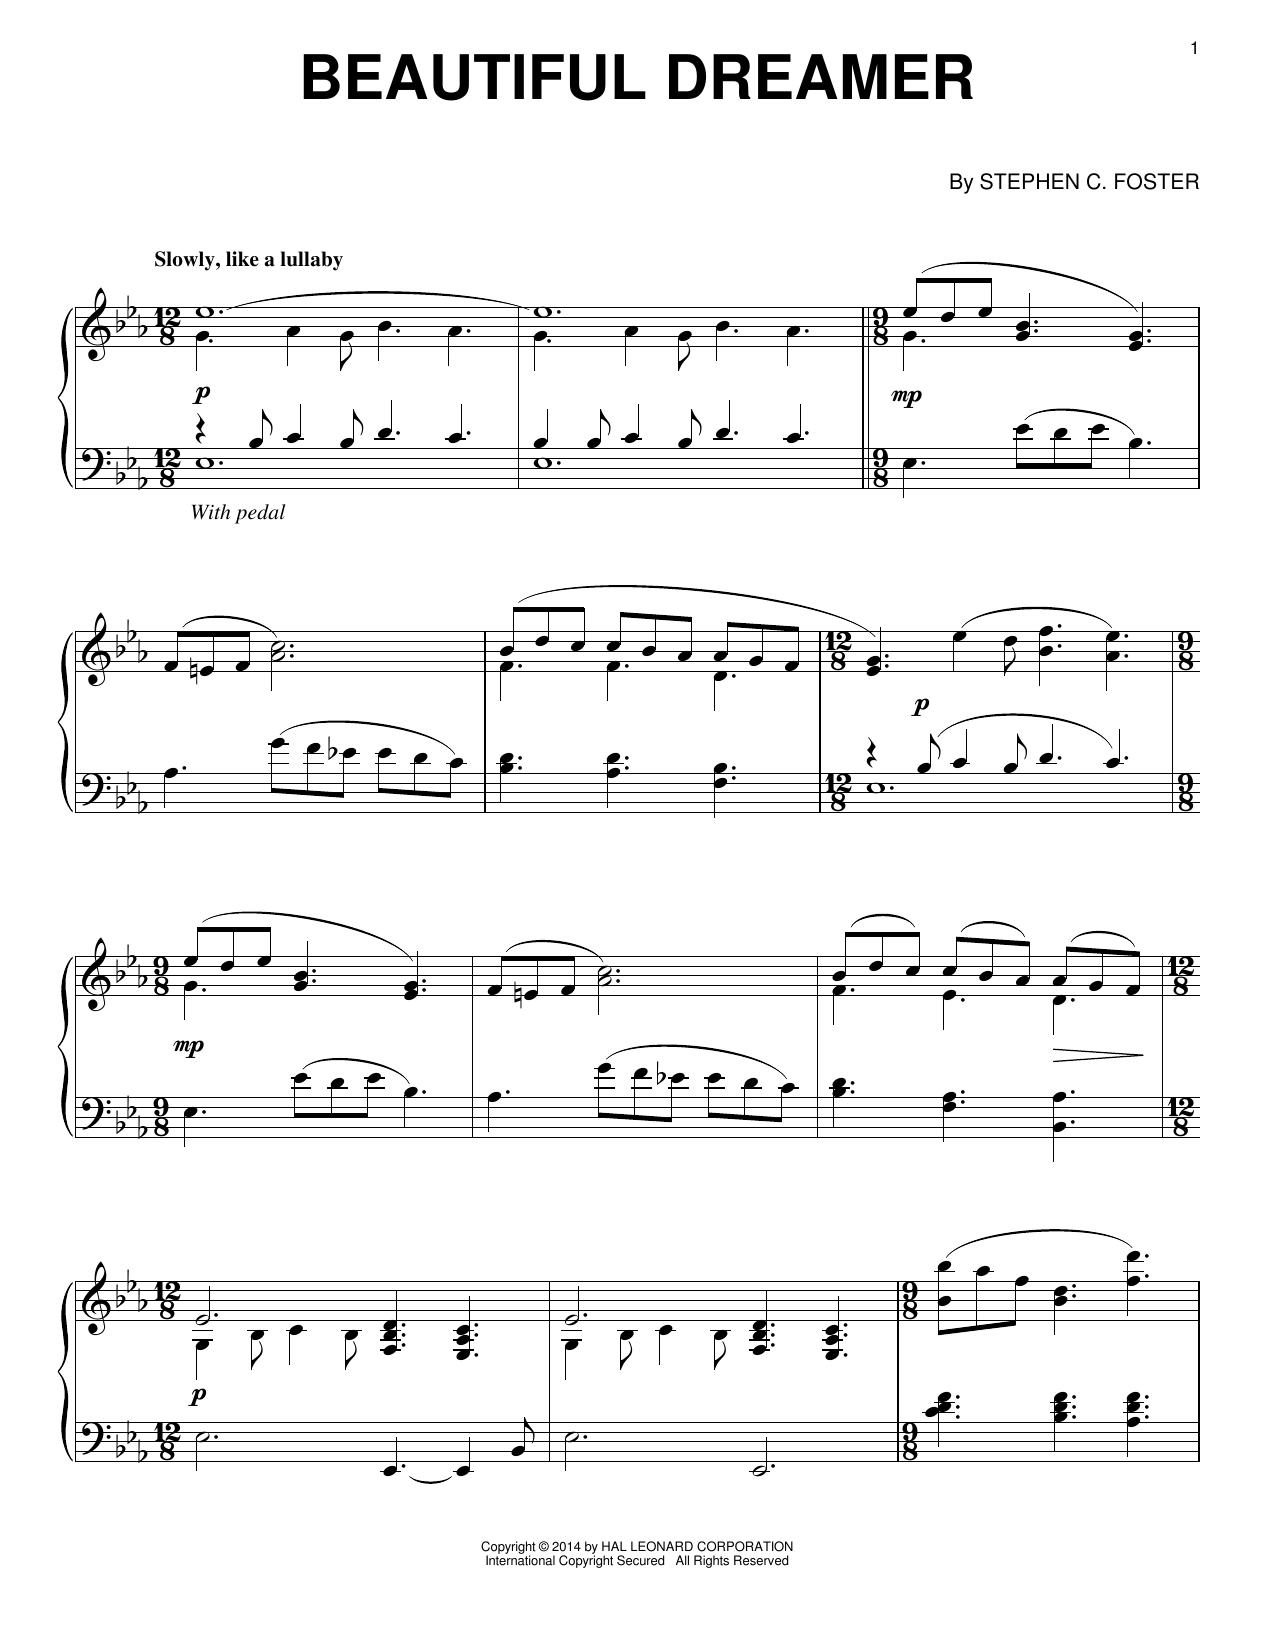 Stephen C. Foster Beautiful Dreamer sheet music notes and chords. Download Printable PDF.